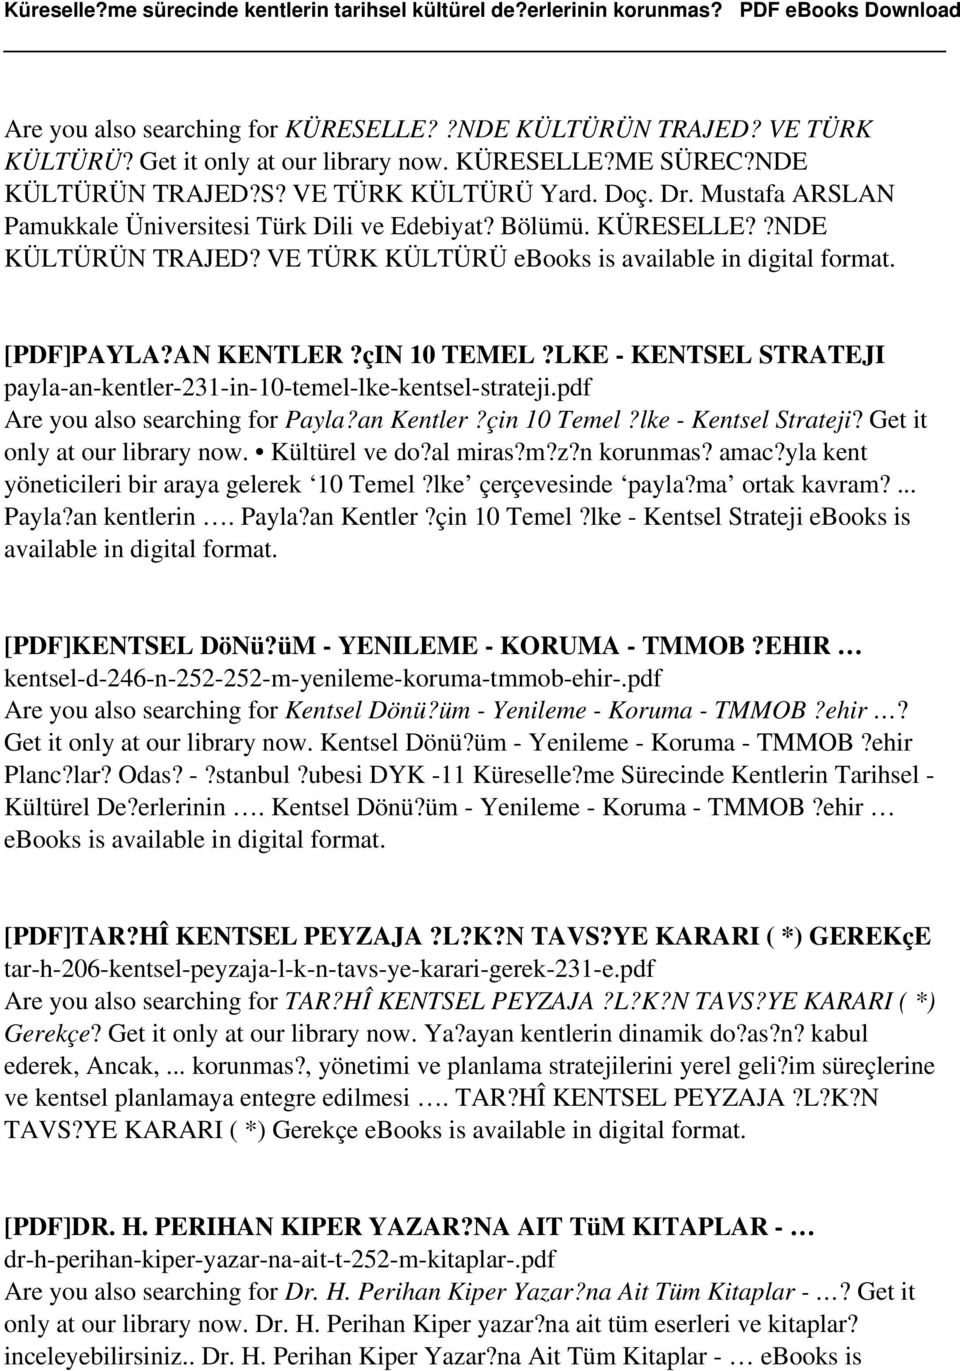 LKE - KENTSEL STRATEJI payla-an-kentler-231-in-10-temel-lke-kentsel-strateji.pdf Are you also searching for Payla?an Kentler?çin 10 Temel?lke - Kentsel Strateji? Get it only at our library now.